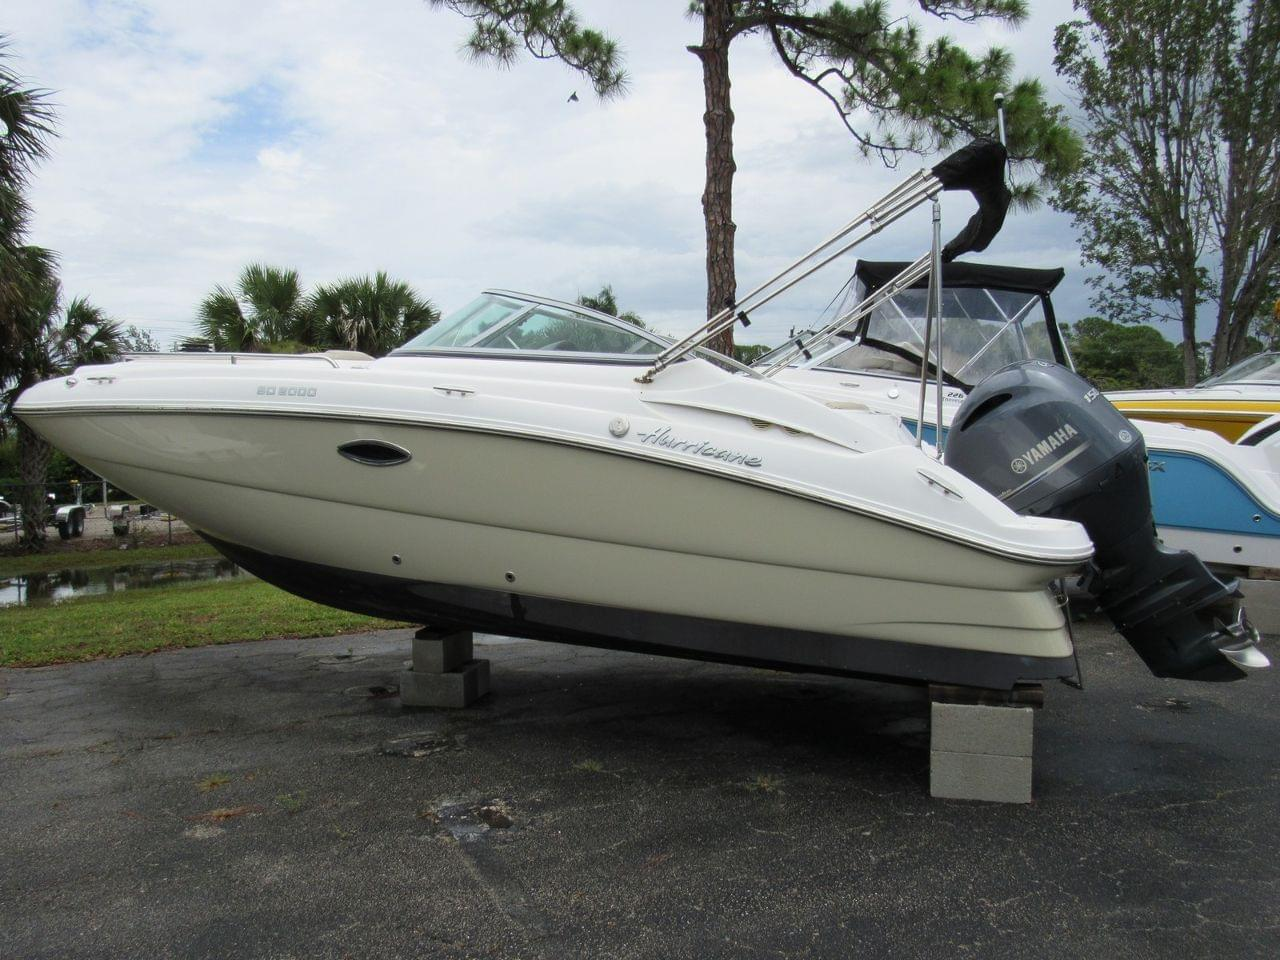 Hurricane Sun Deck 2000